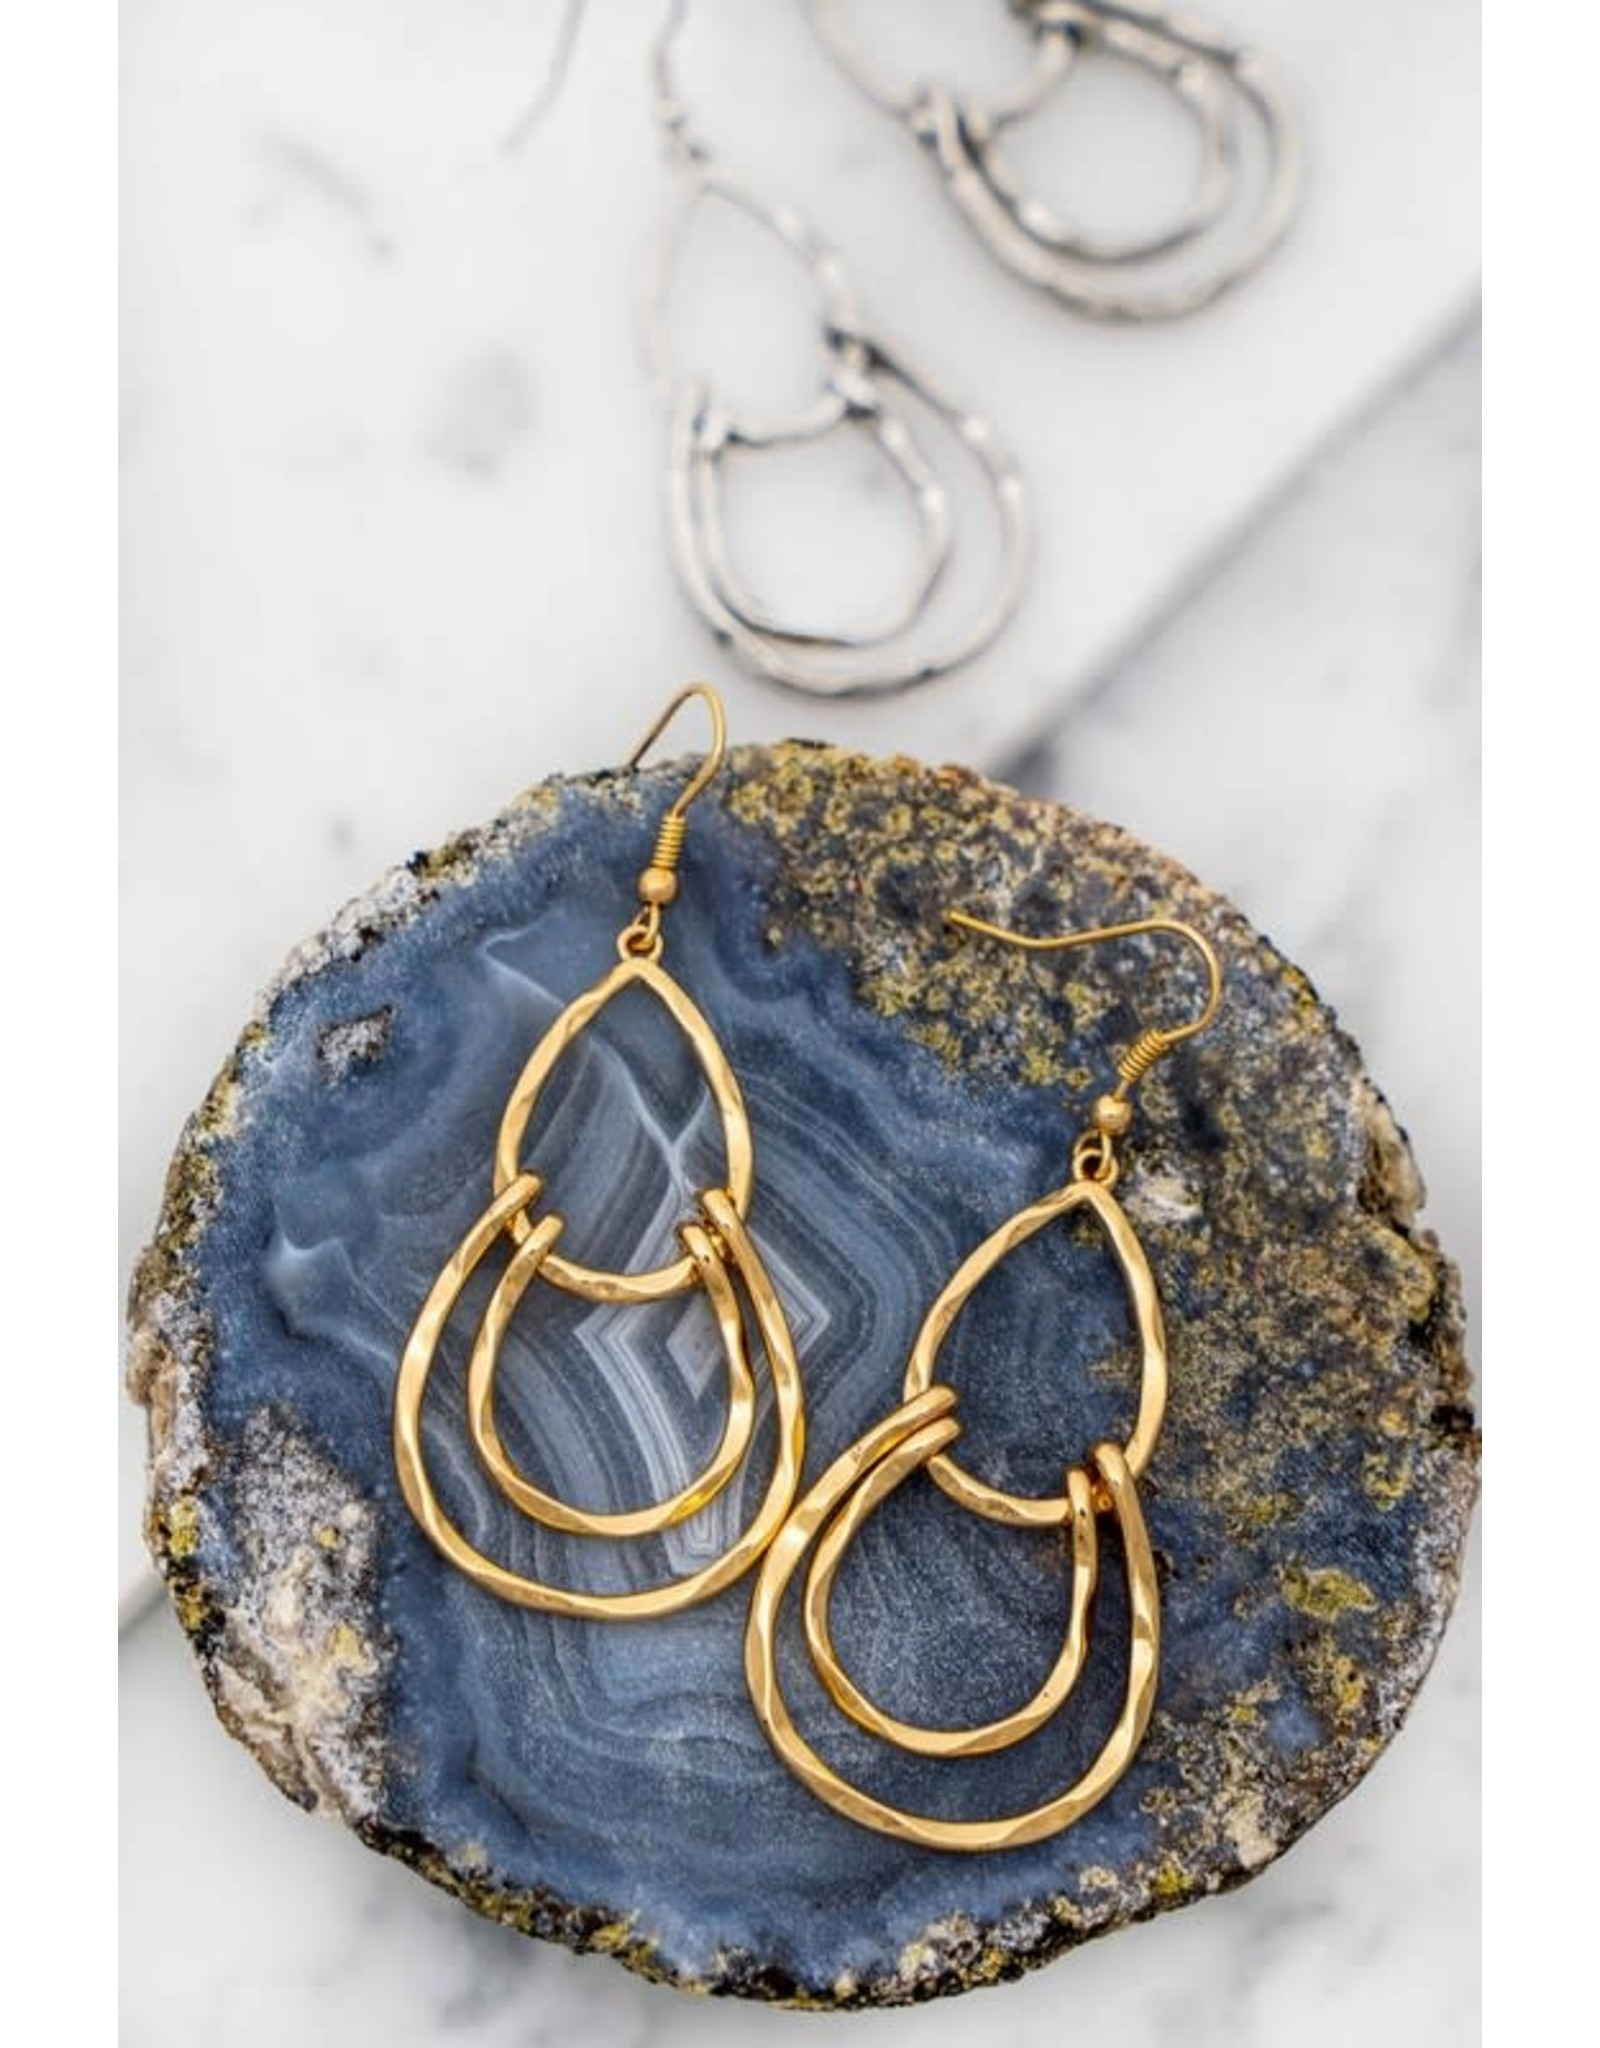 HAMMERED CASTING EARRINGS